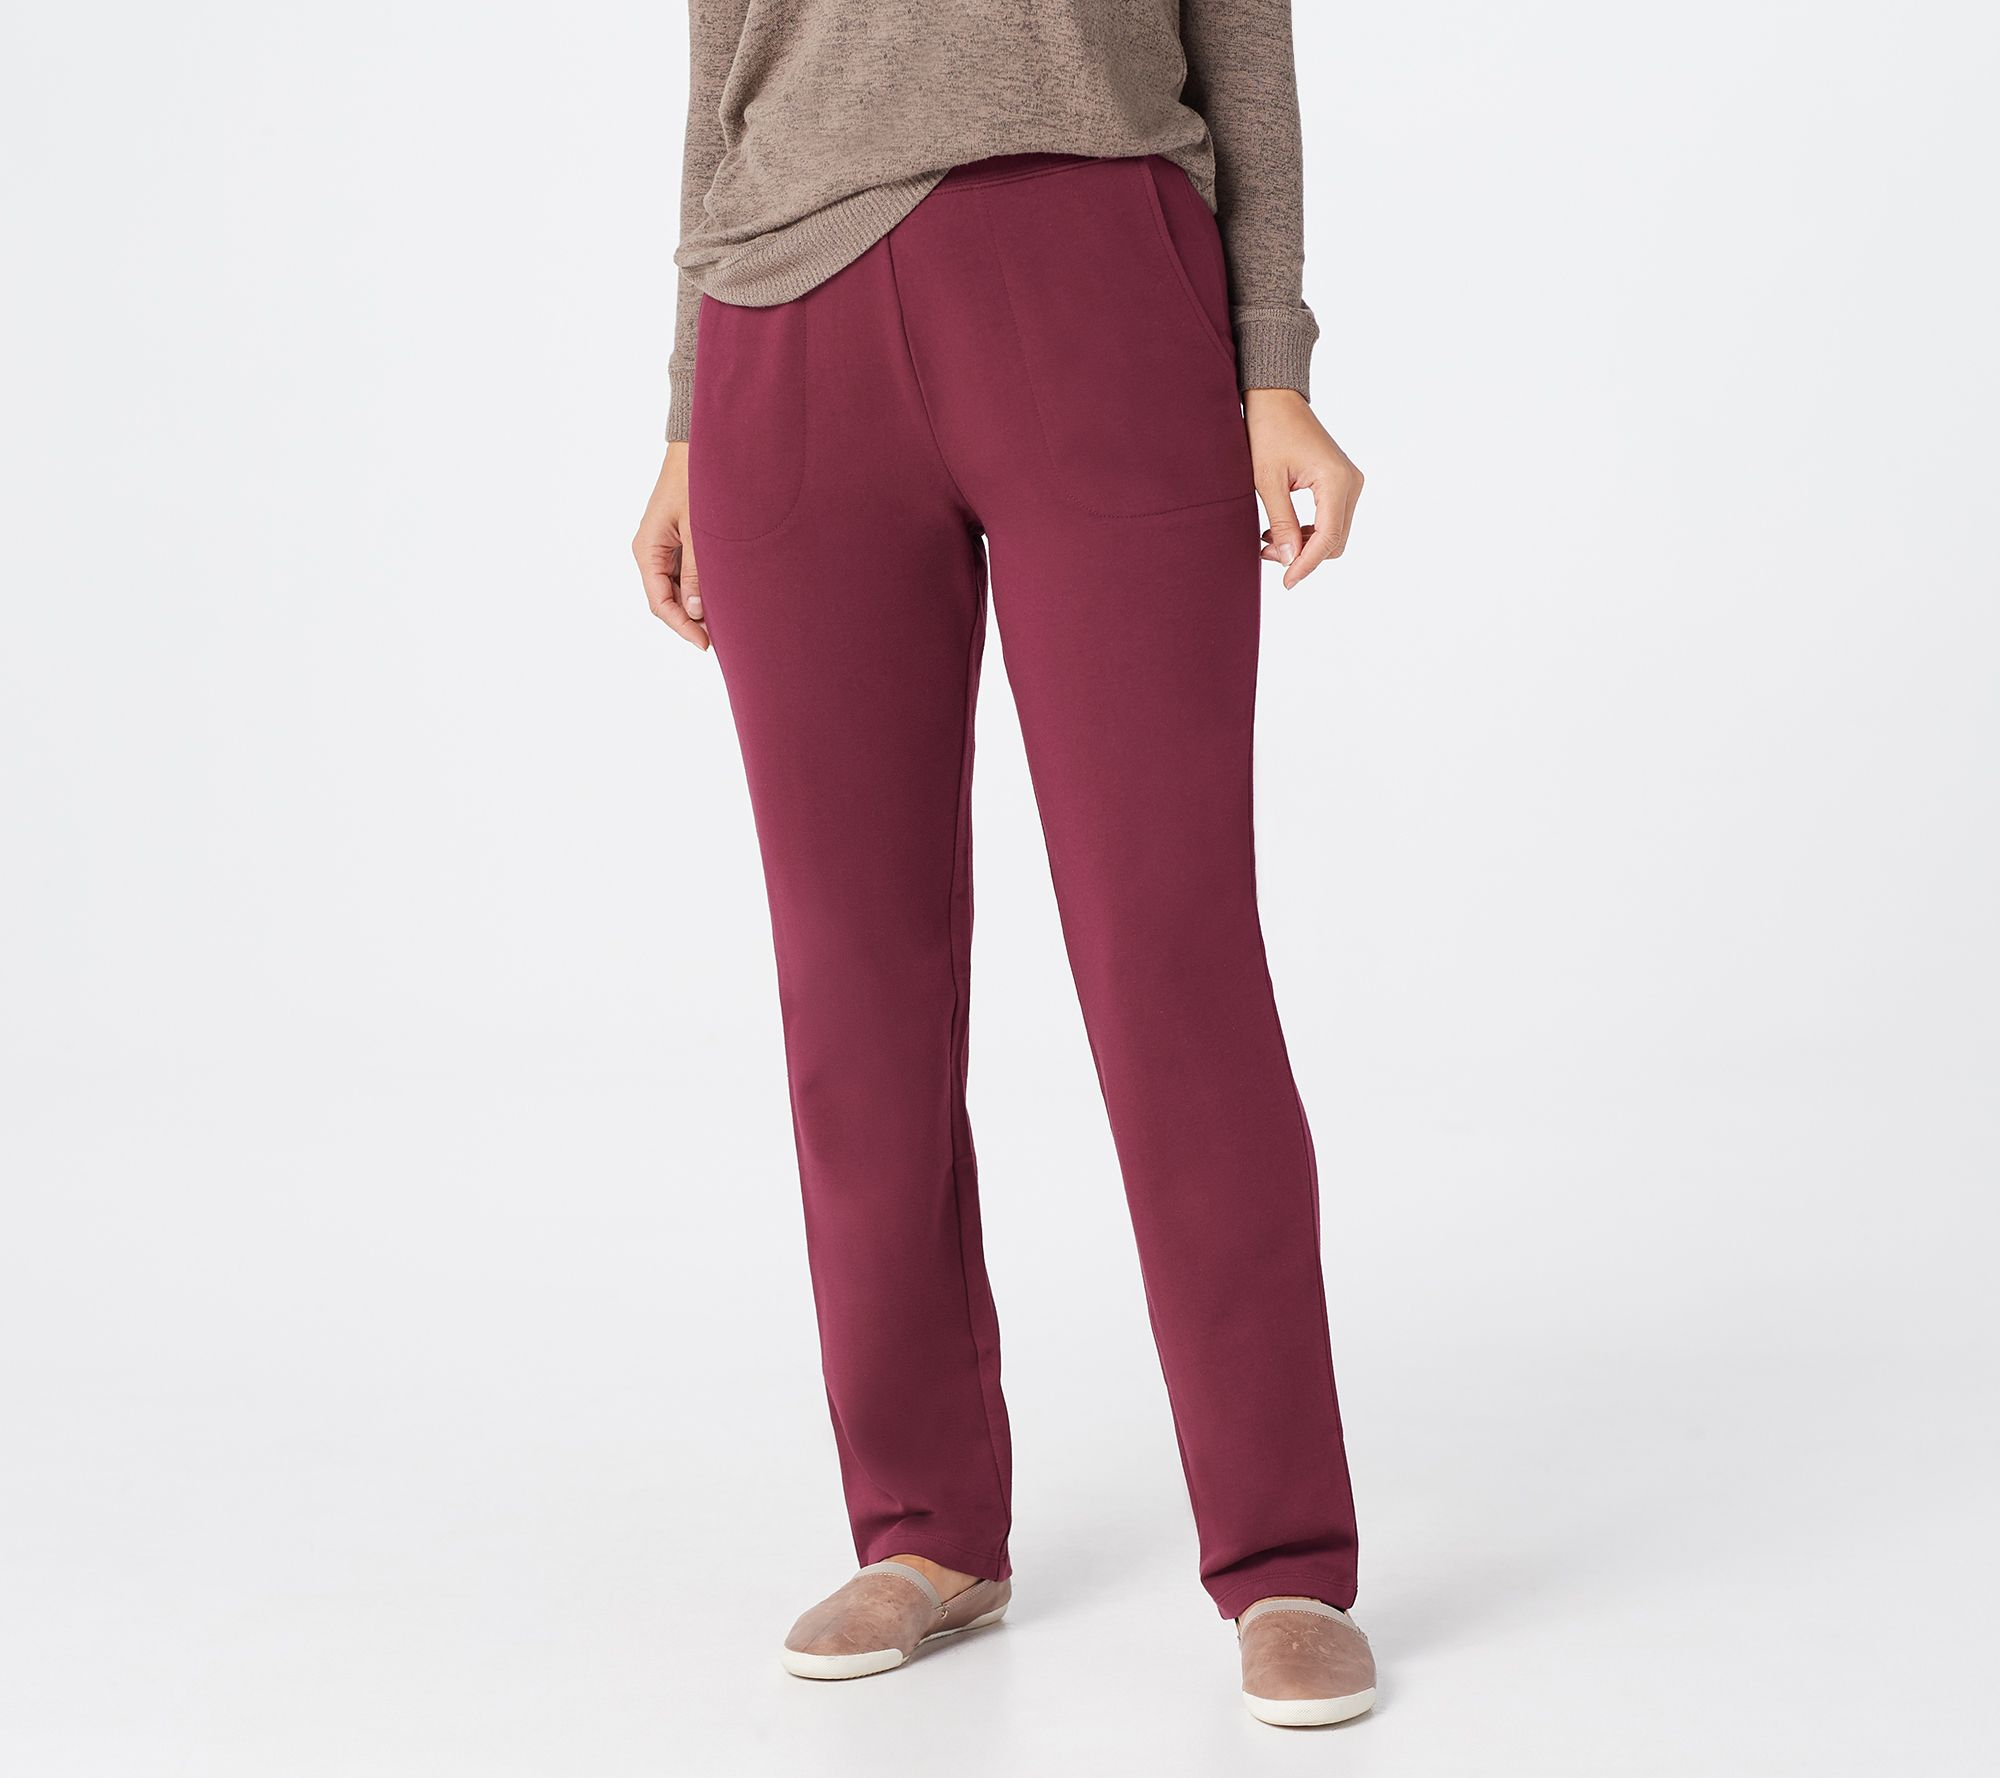 Denim Amp Co Active French Terry Pull On Pants Qvc Com